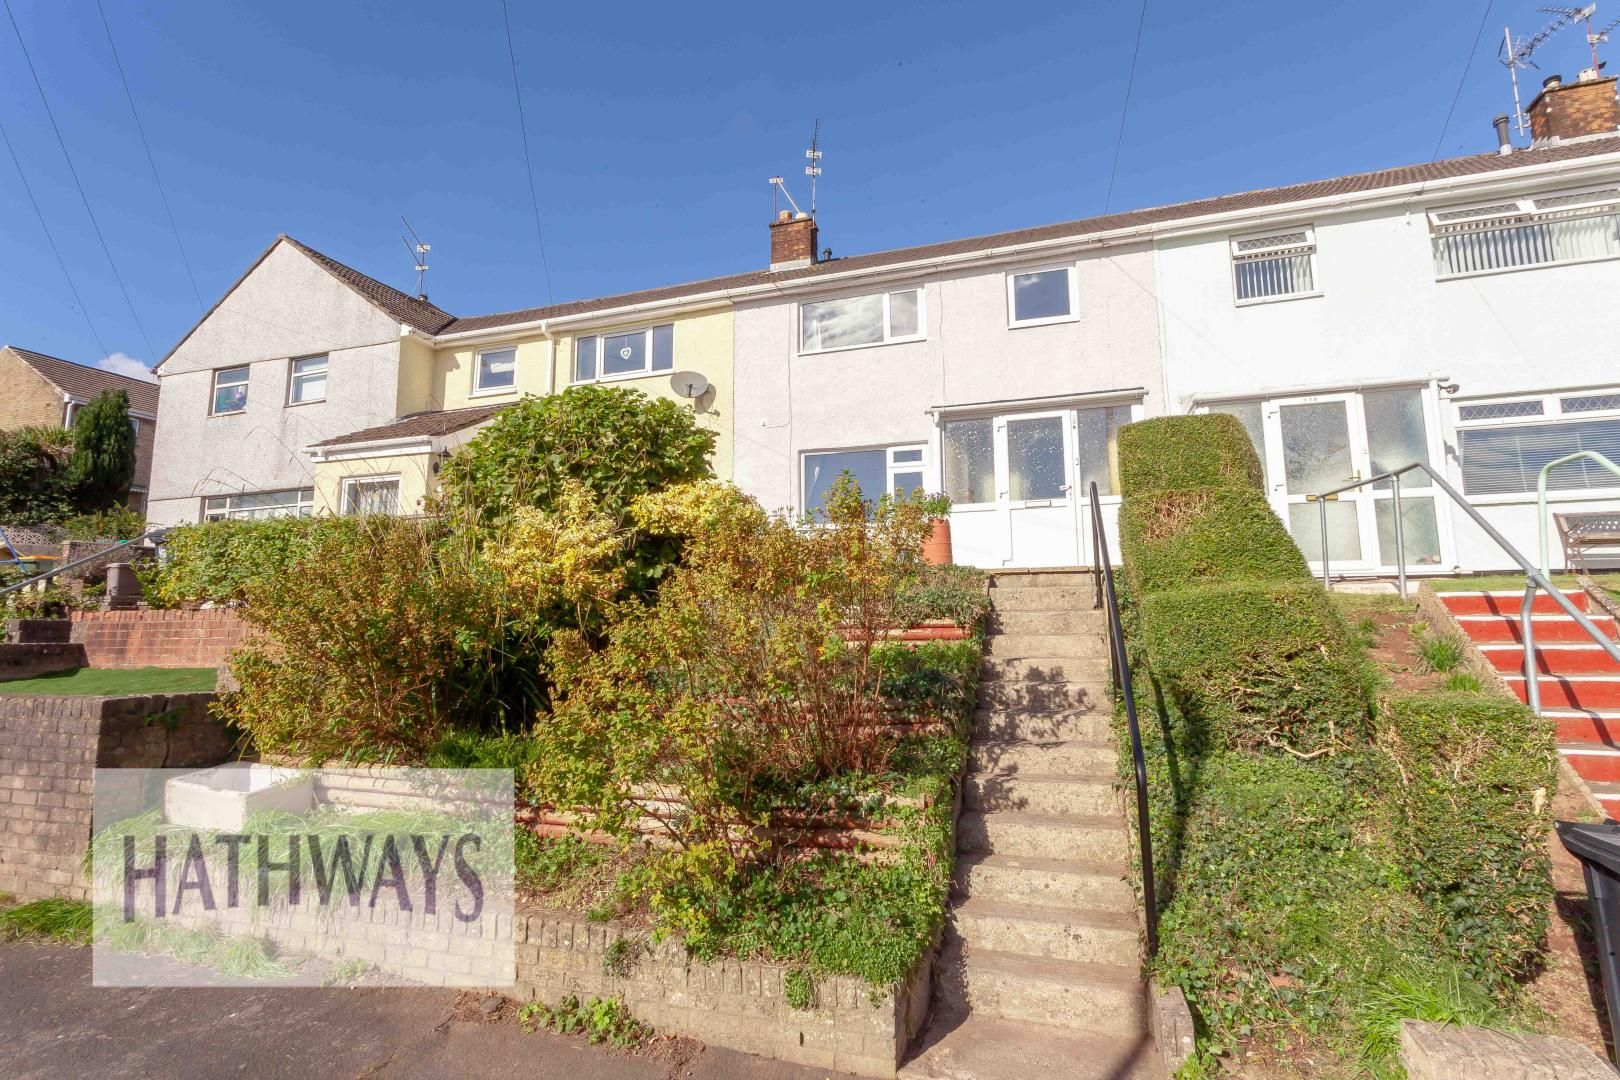 3 bed house for sale in Roman Way, NP18